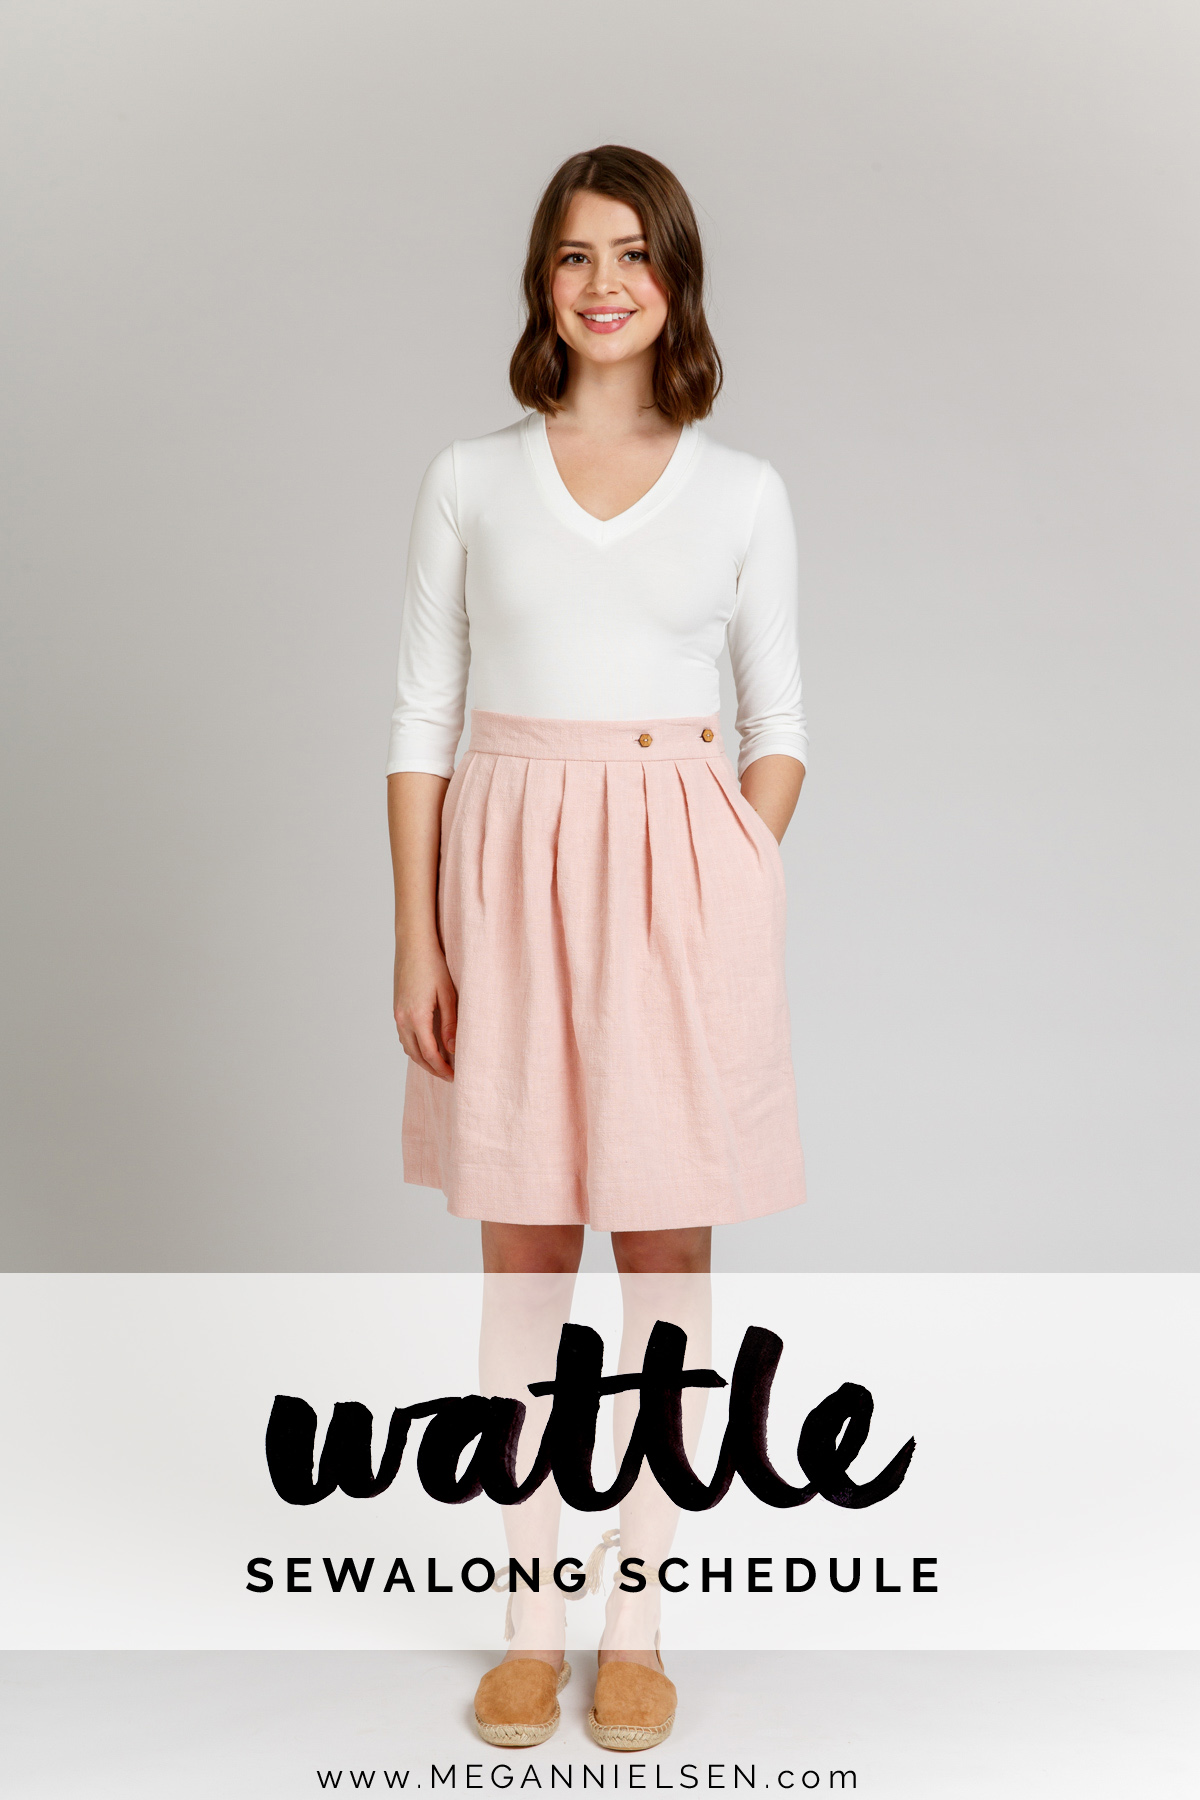 sewalong schedule for the Wattle skirt by Megan Nielsen Patterns